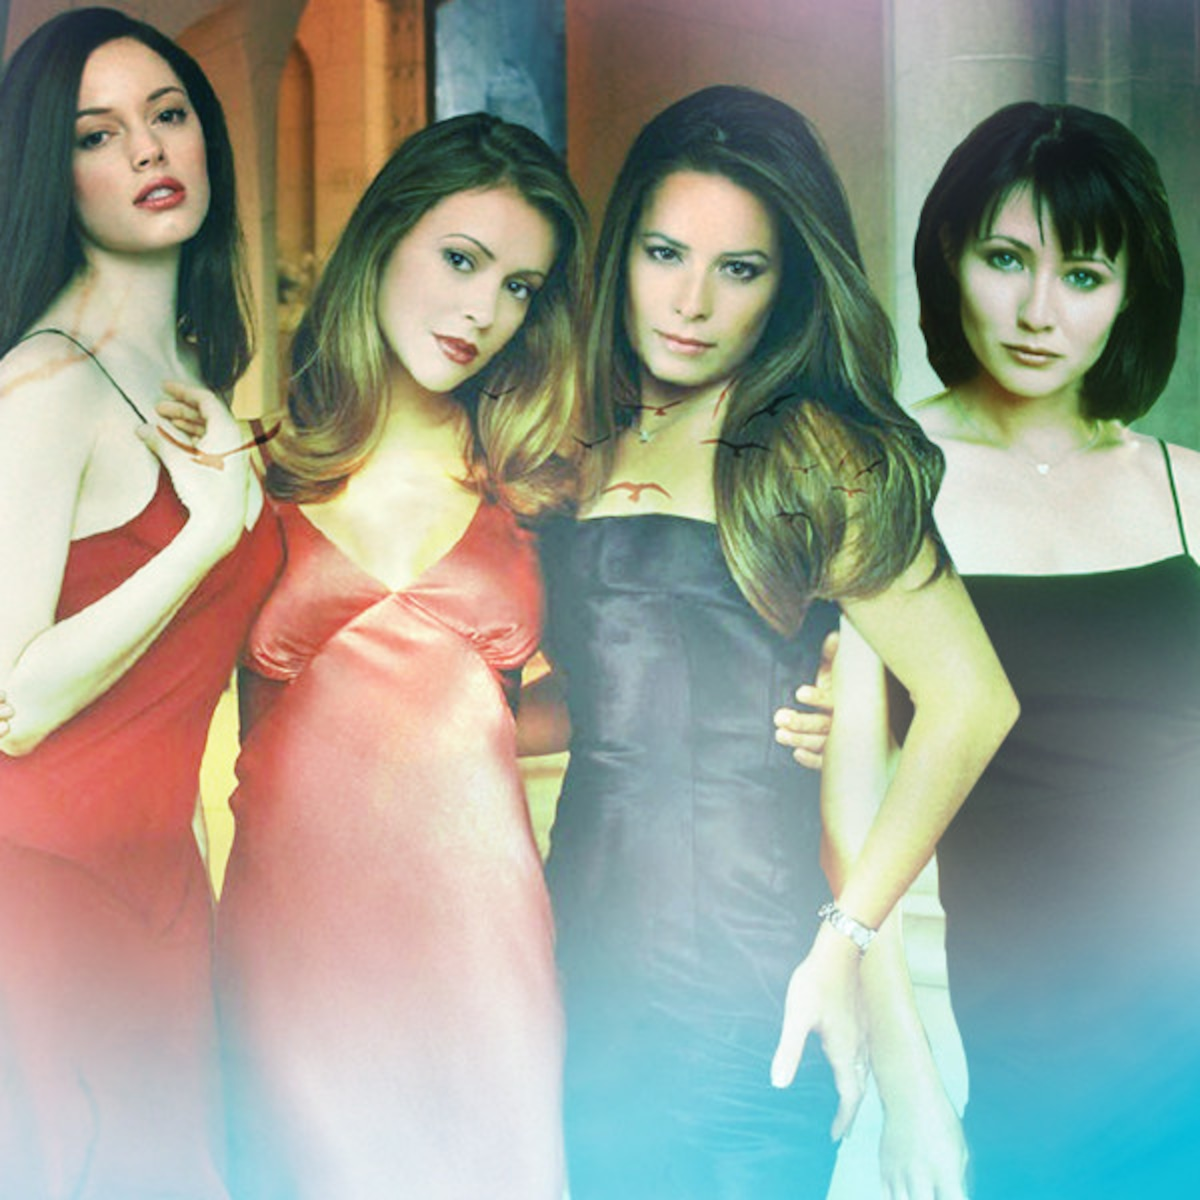 Alyssa Milano Movie Scenes revisiting the wicked behind-the-scenes drama of charmed | e